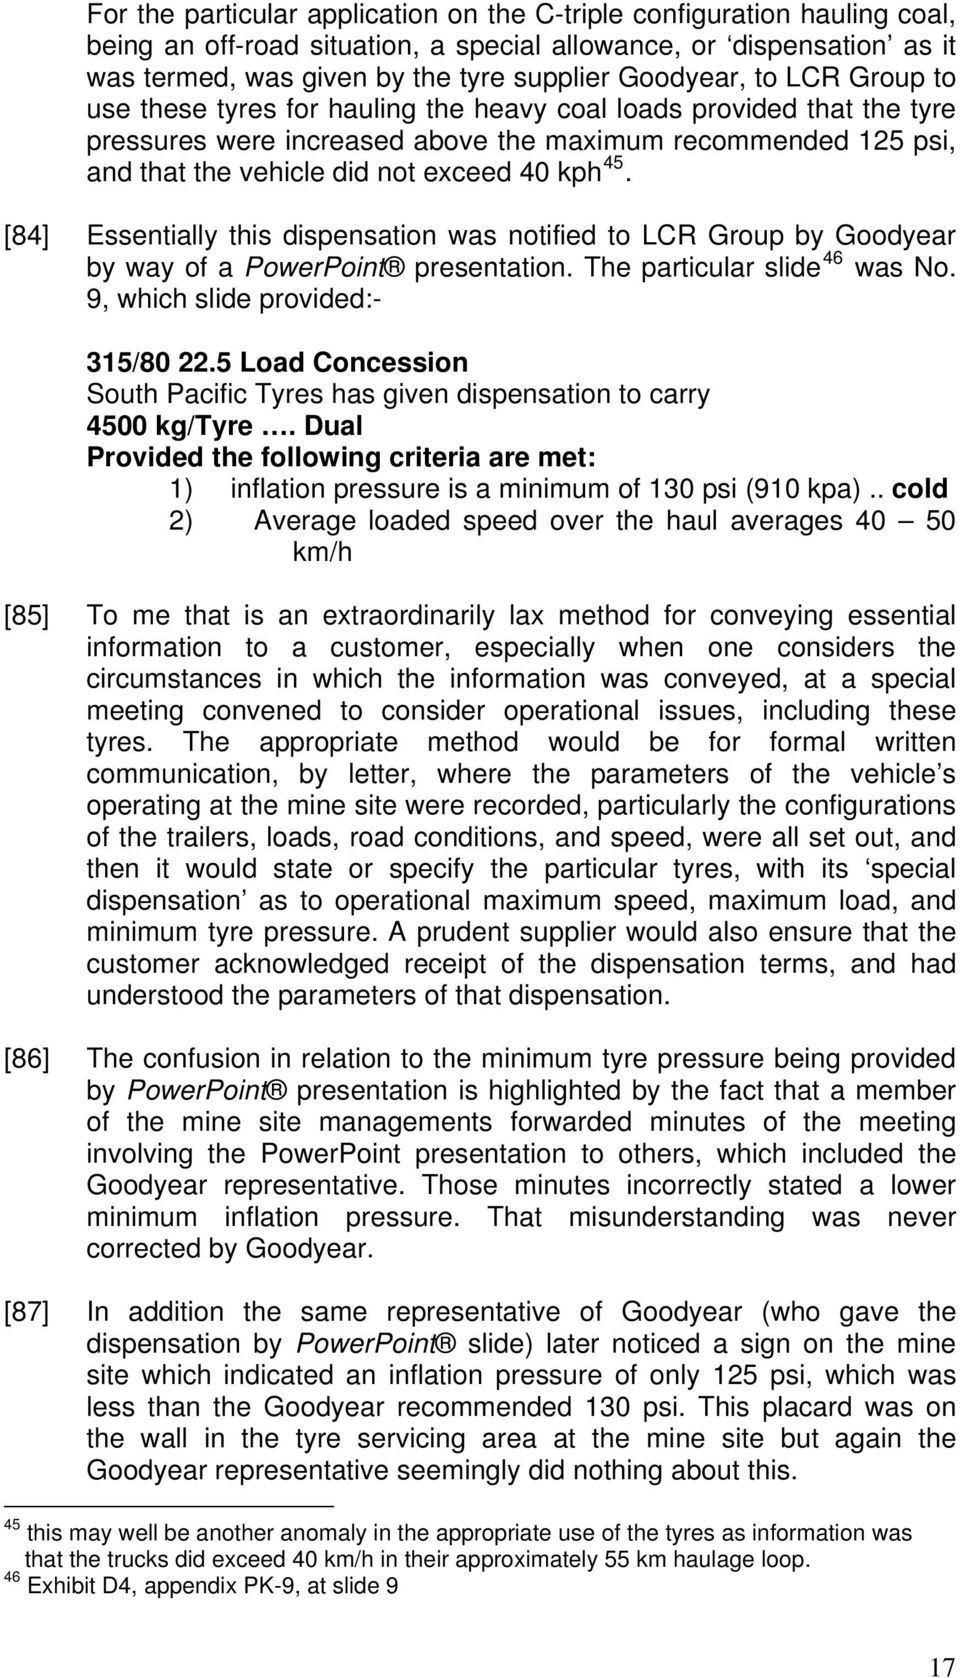 [84] Essentially this dispensation was notified to LCR Group by Goodyear by way of a PowerPoint presentation. The particular slide 46 was No. 9, which slide provided:- 315/80 22.